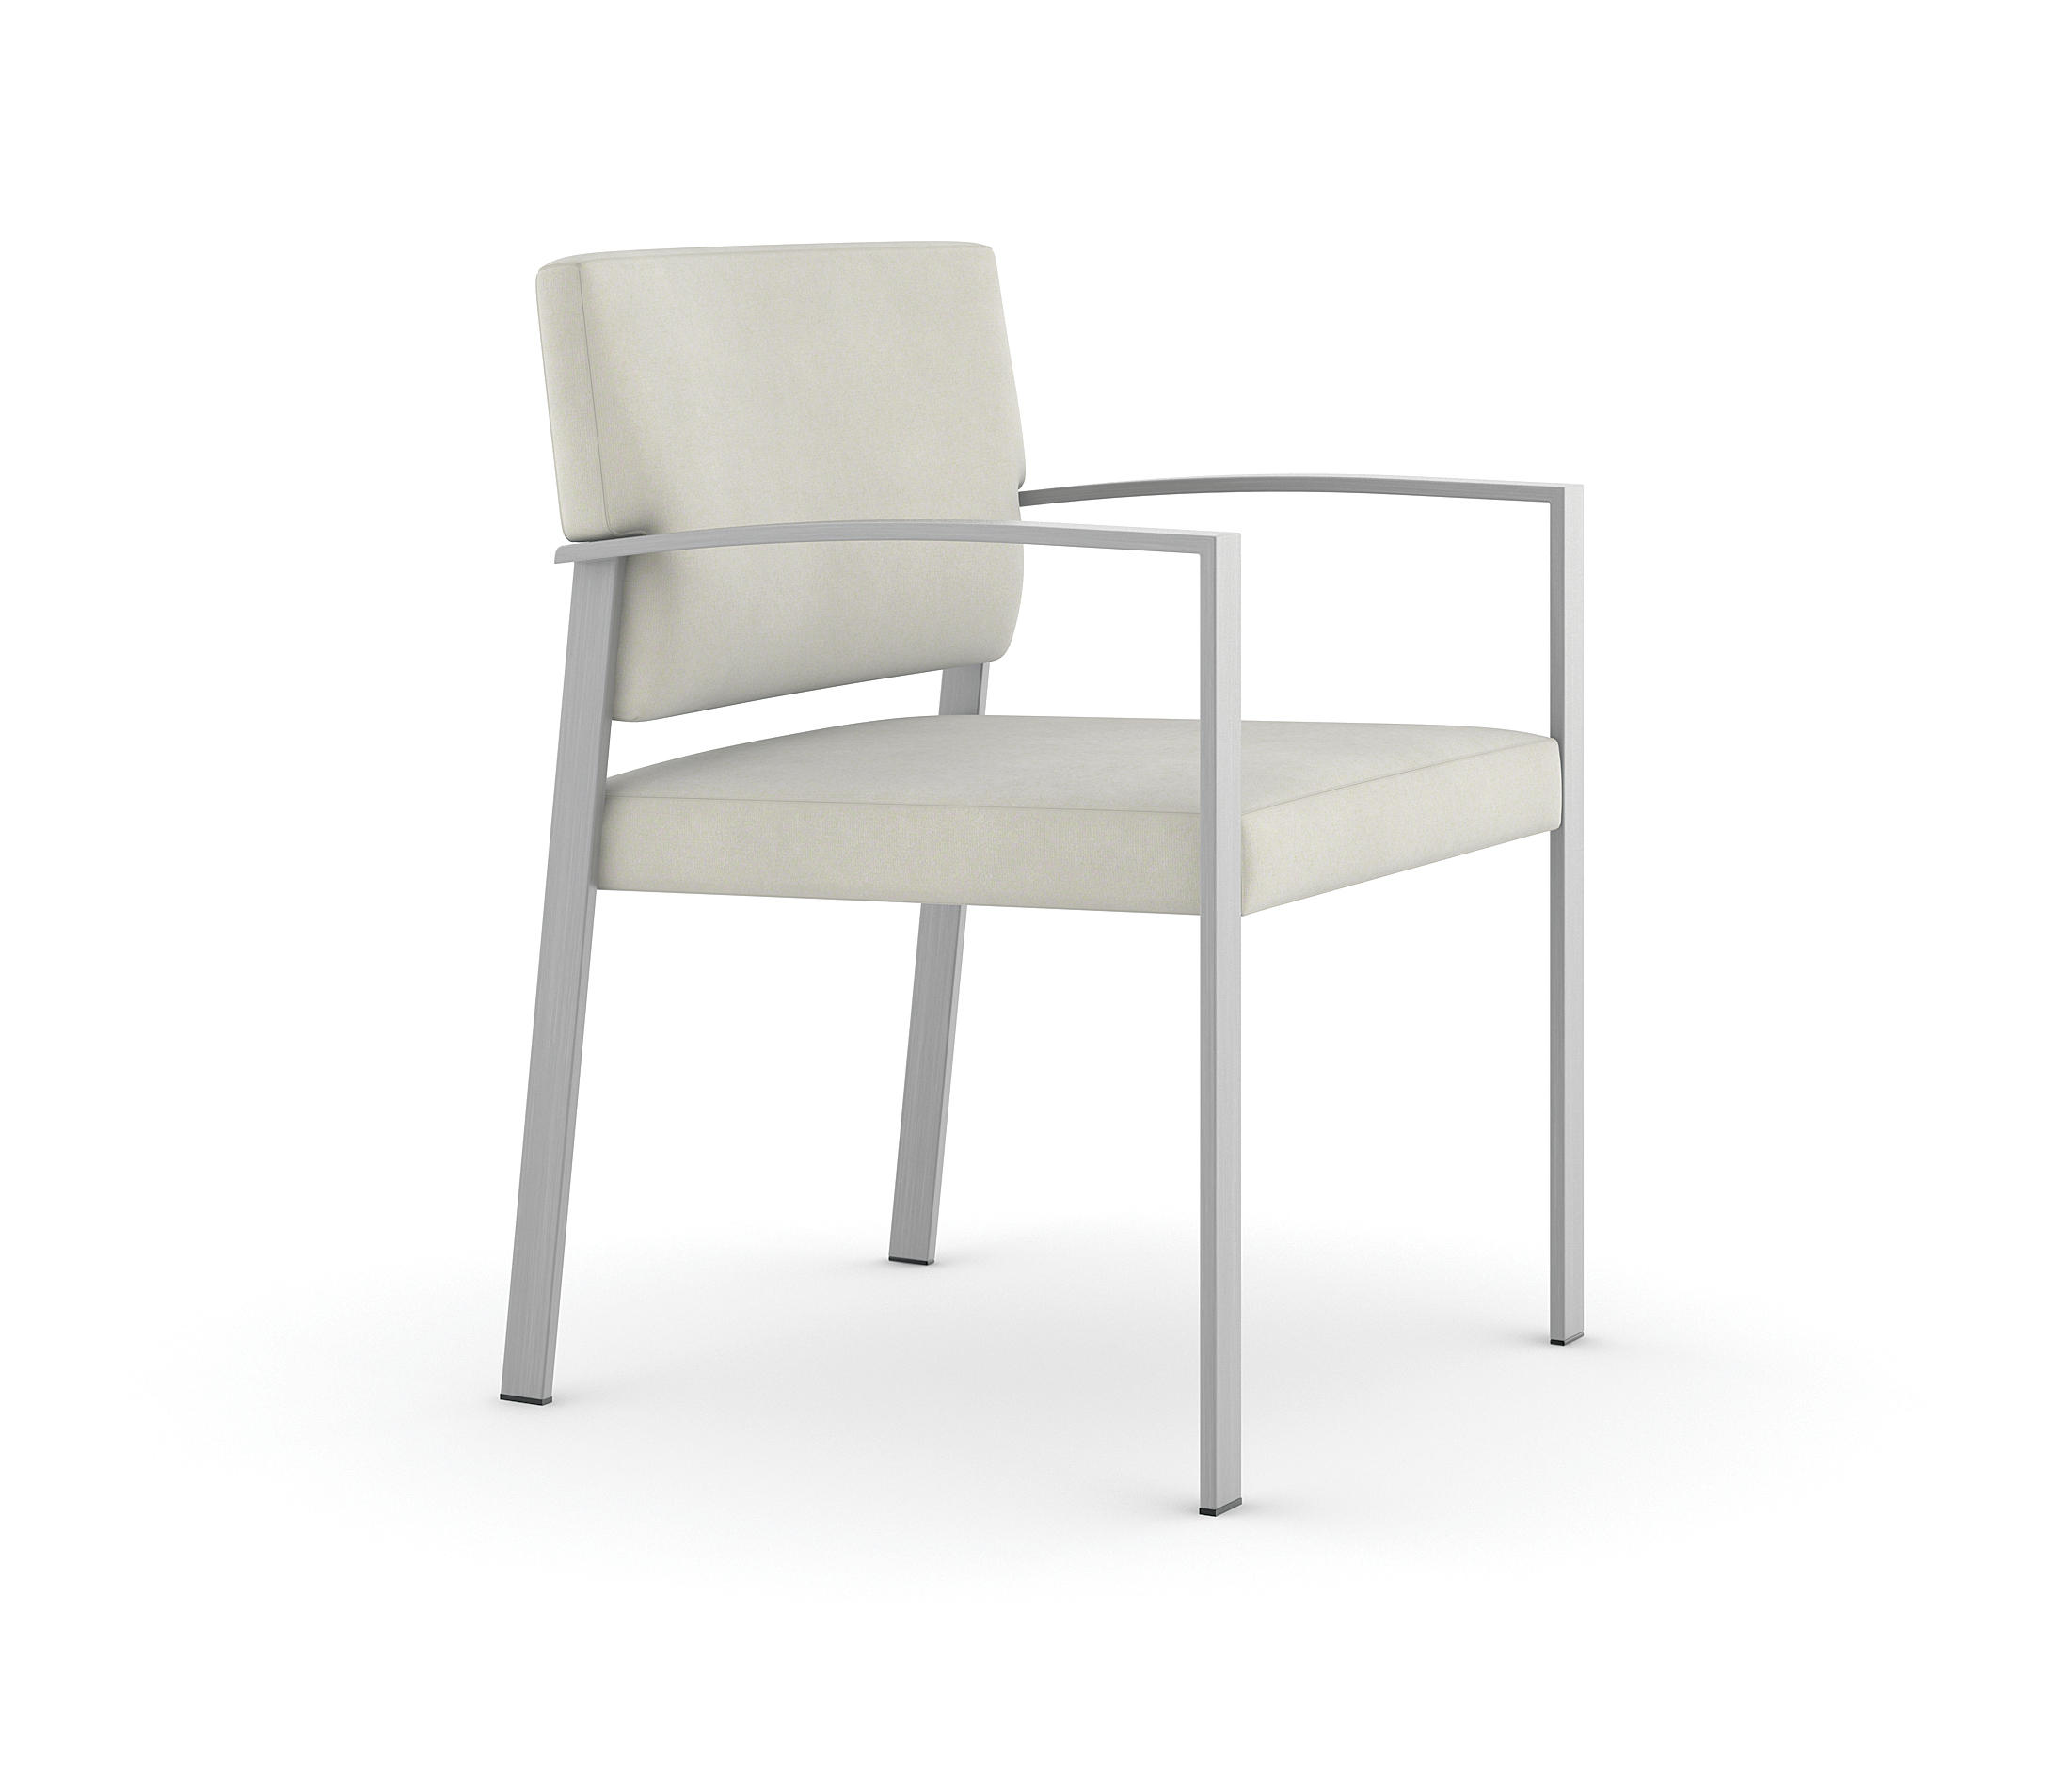 Steel Side Chair / Brushed Stainless Steel Frame By Trinity Furniture |  Chairs